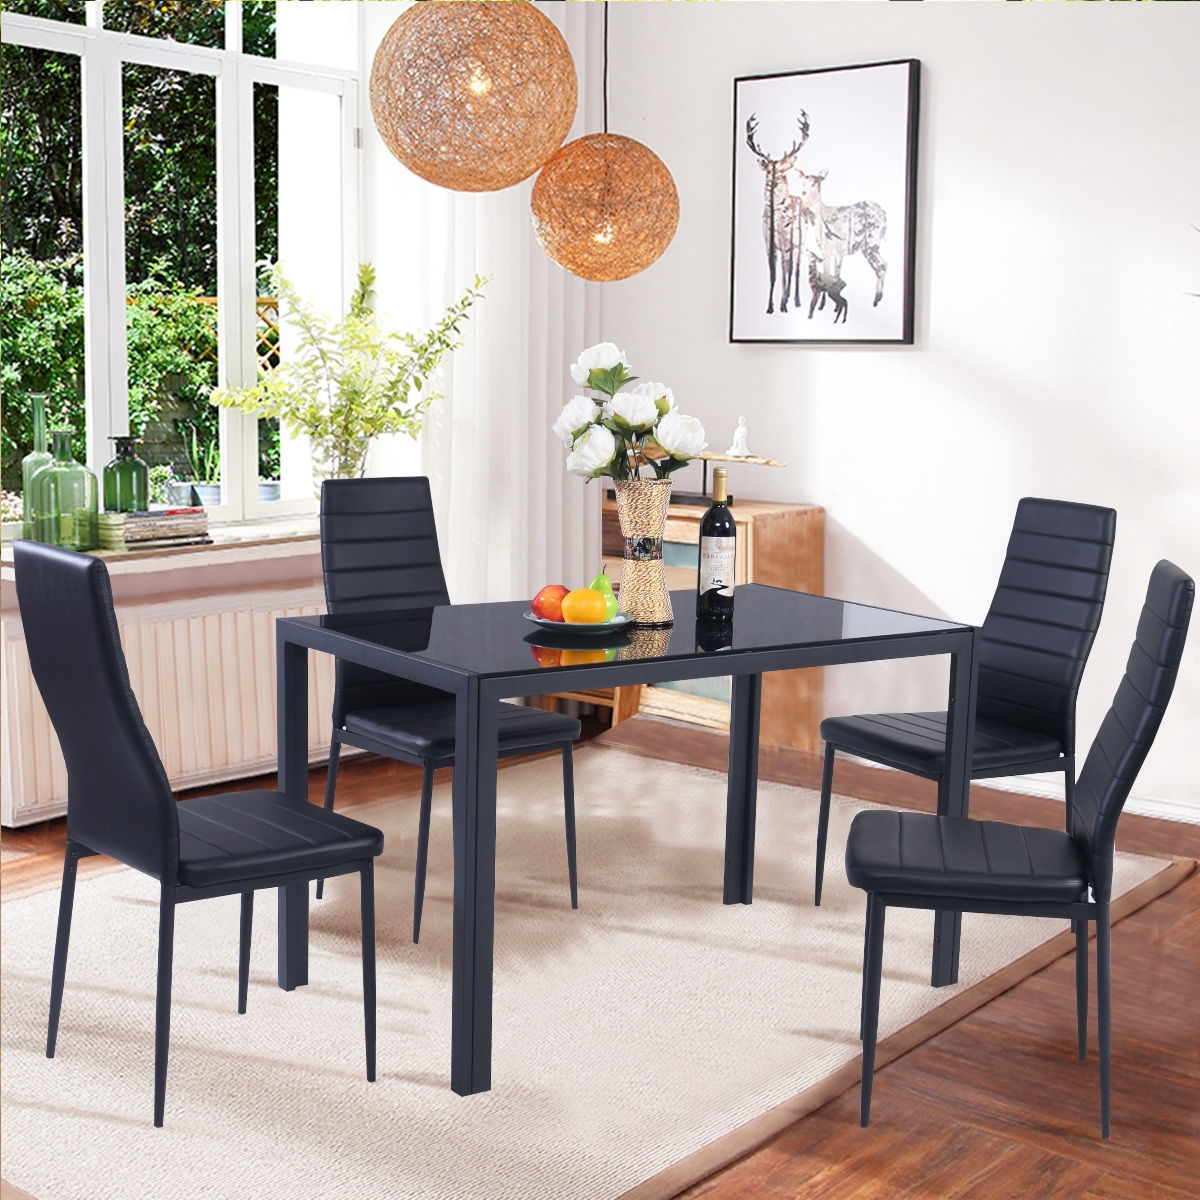 Dining Table Sets Within Popular Costway 5 Piece Kitchen Dining Set Glass Metal Table And 4 Chairs (View 9 of 25)